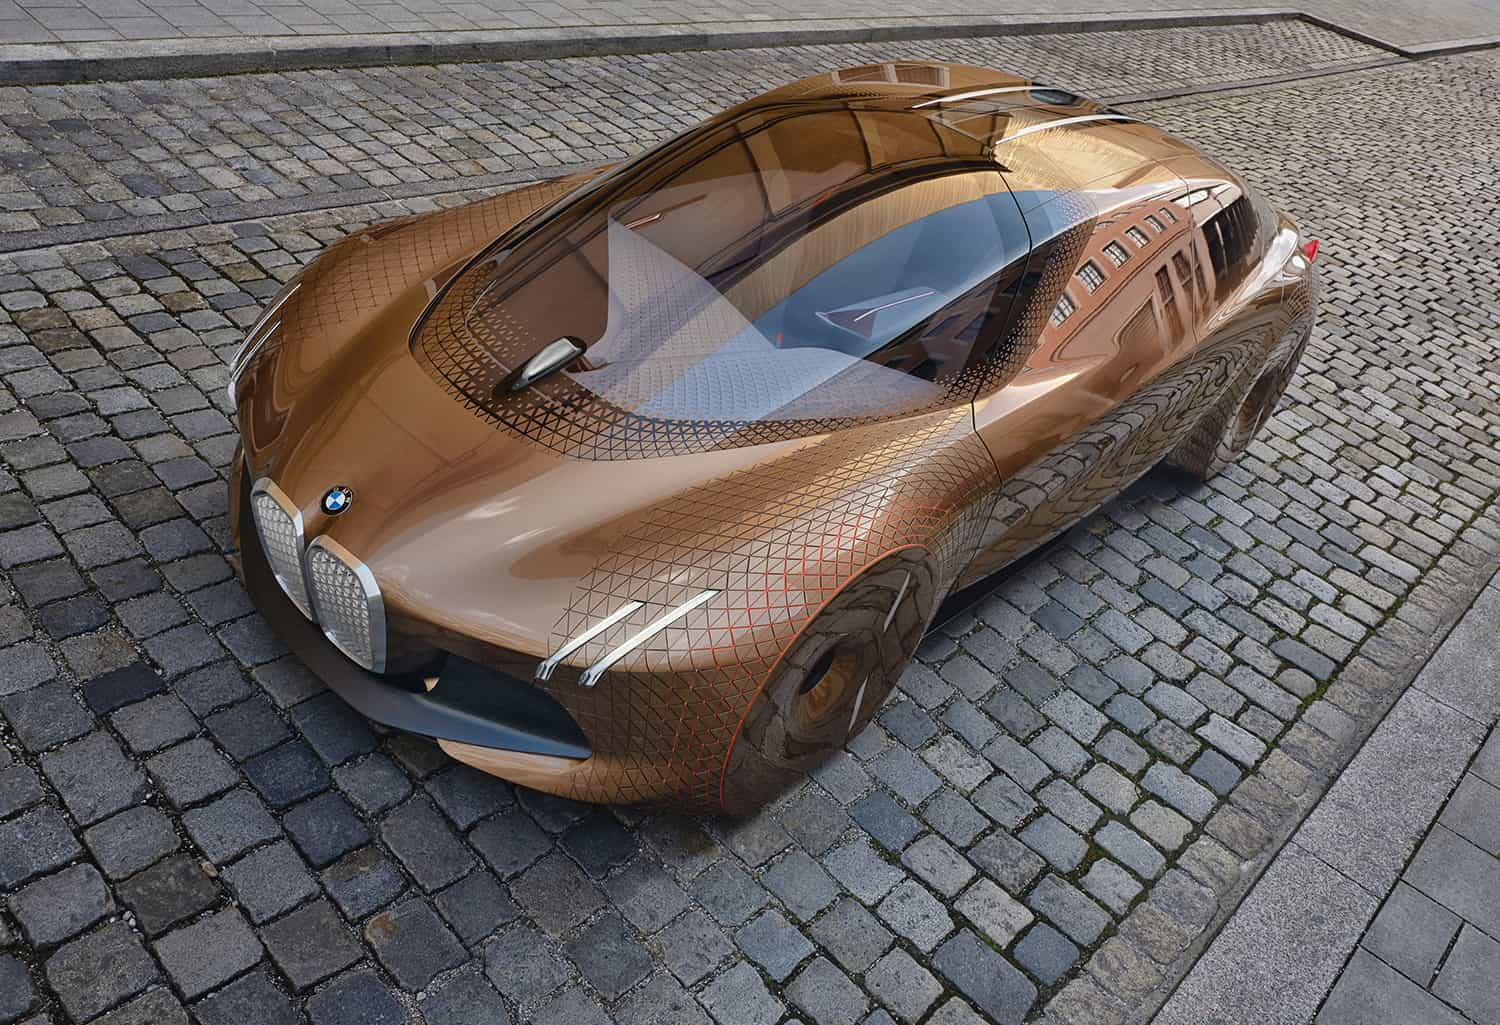 BMW Centenary Concept Car; The Vision Next 100